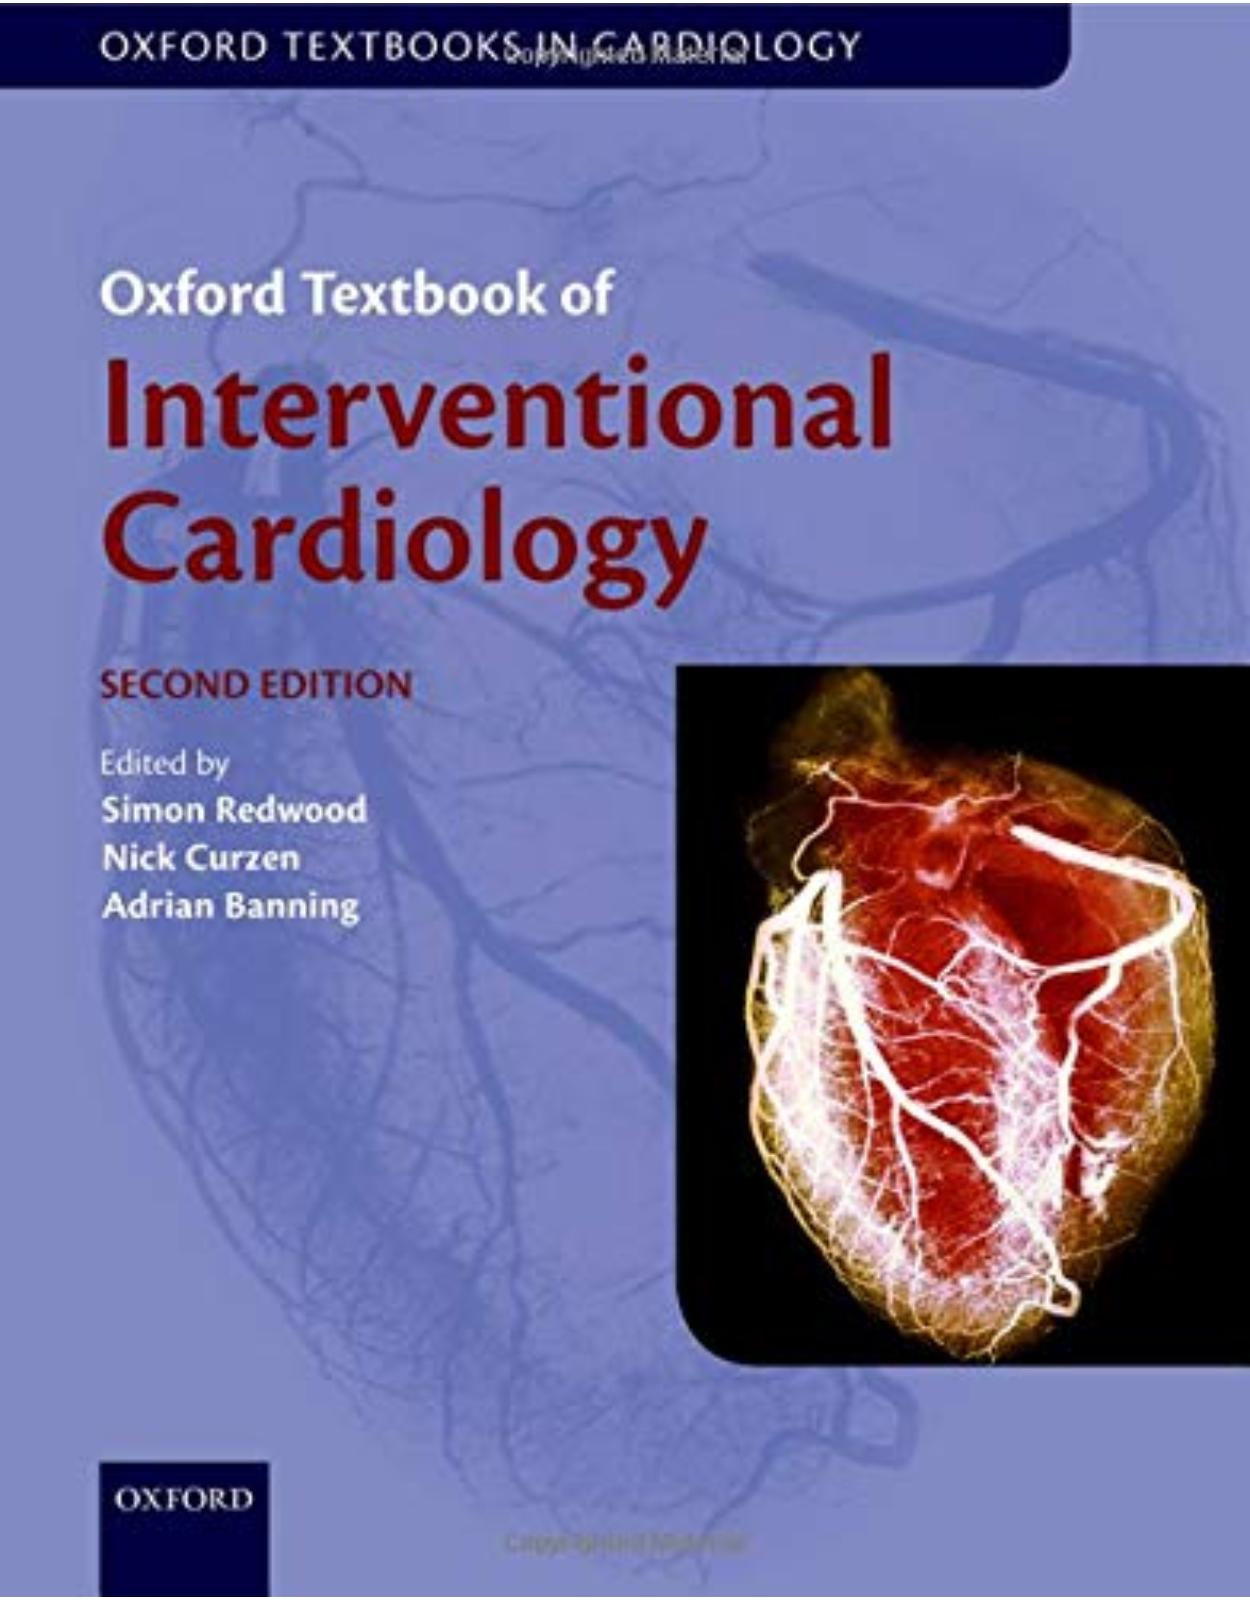 Oxford Textbook of Interventional Cardiology. Second Edition